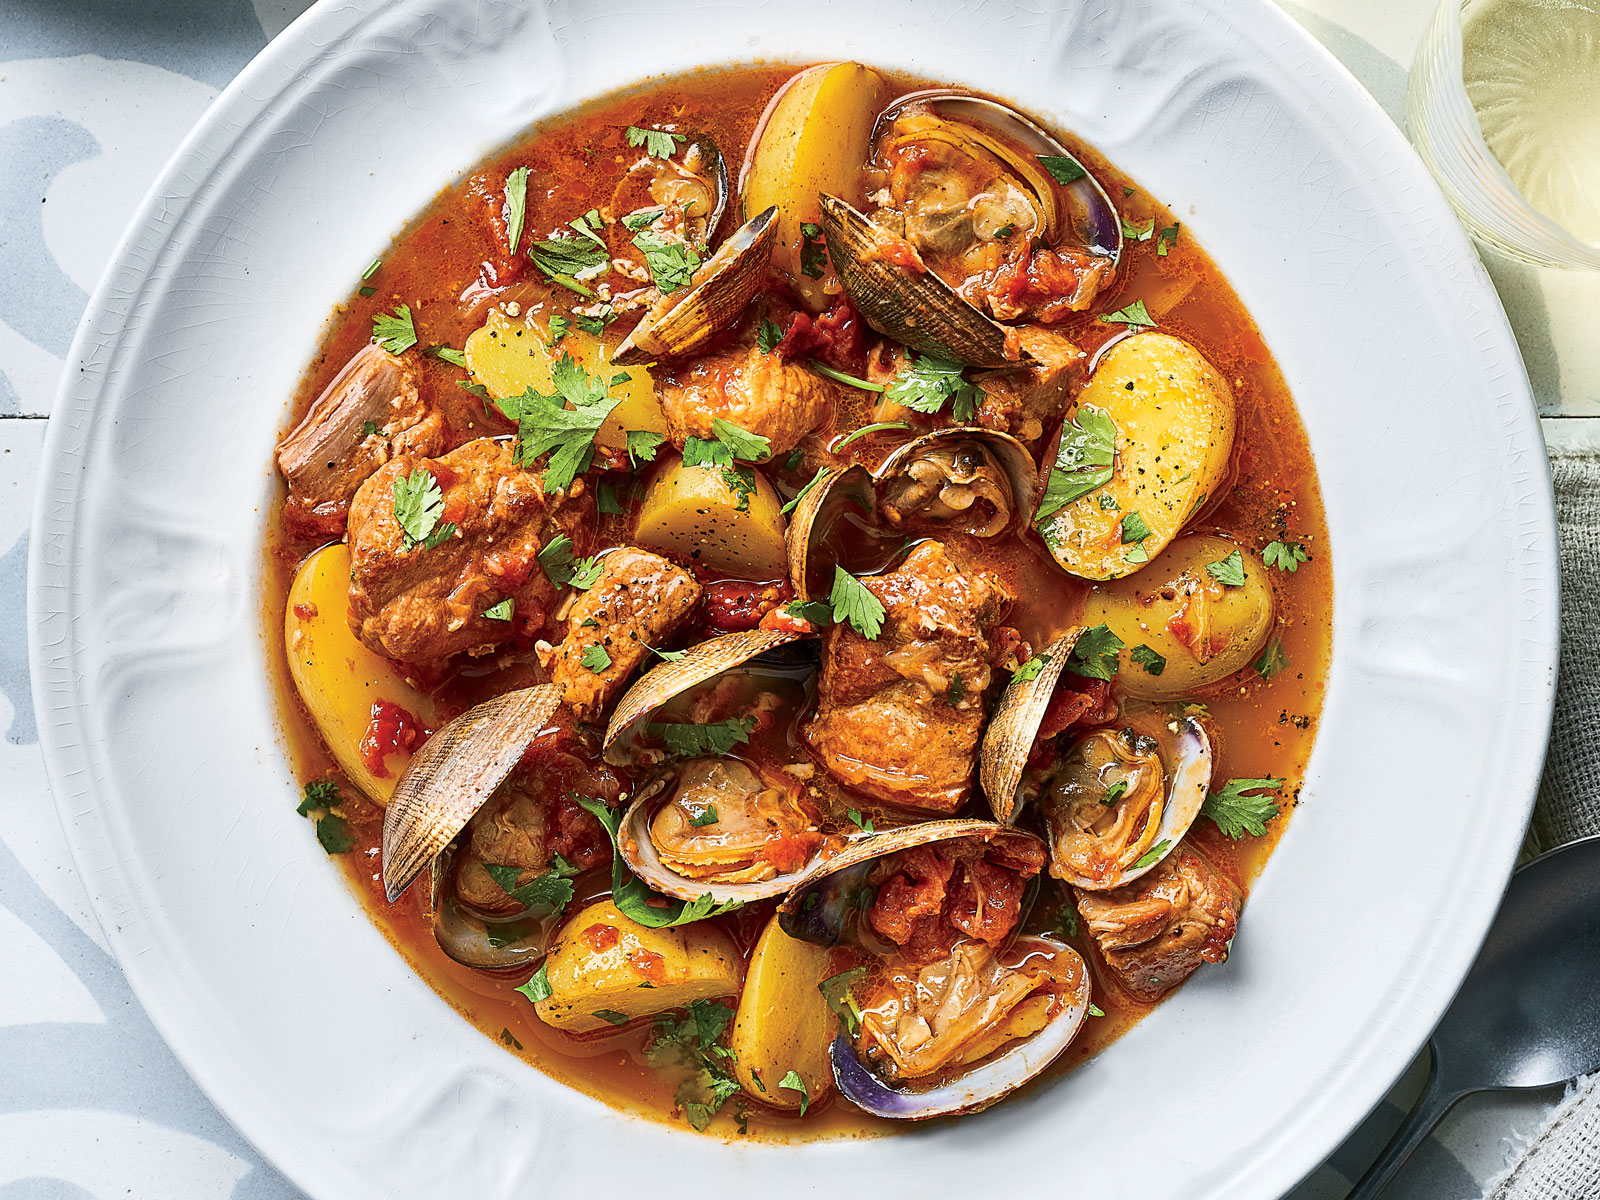 Portugese Braised Pork and Clams